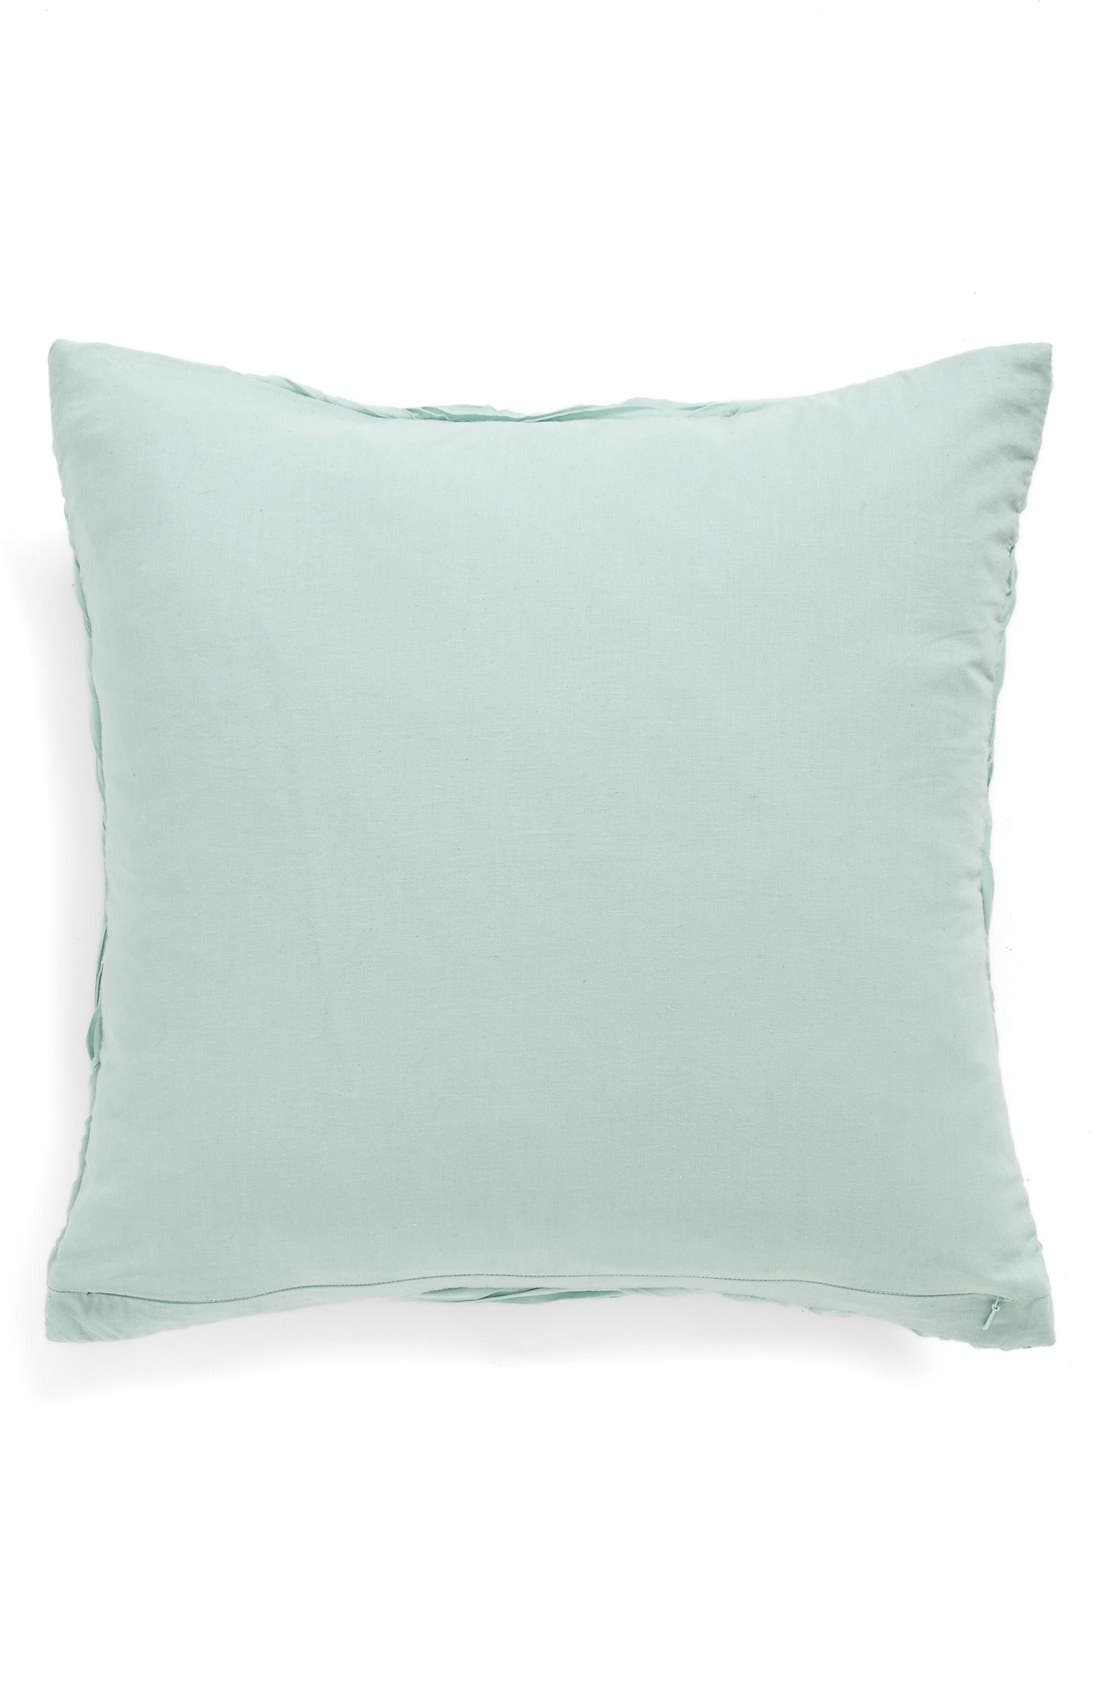 'Full Bloom' Accent Pillow,                             Alternate thumbnail 2, color,                             440